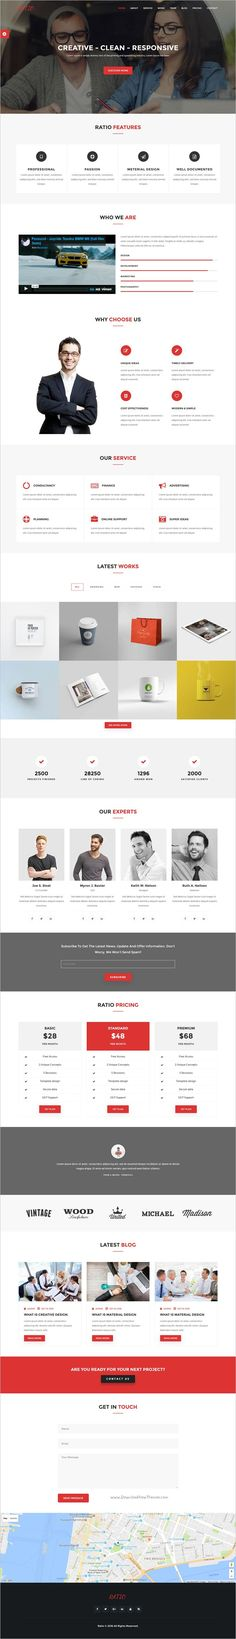 Ratio is a clean and stylish Material Design #Bootstrap Template for #agency and business #website with 6 homepage layouts download now➩ https://themeforest.net/item/ratio-material-design-agency-template/19136745?ref=Datasata